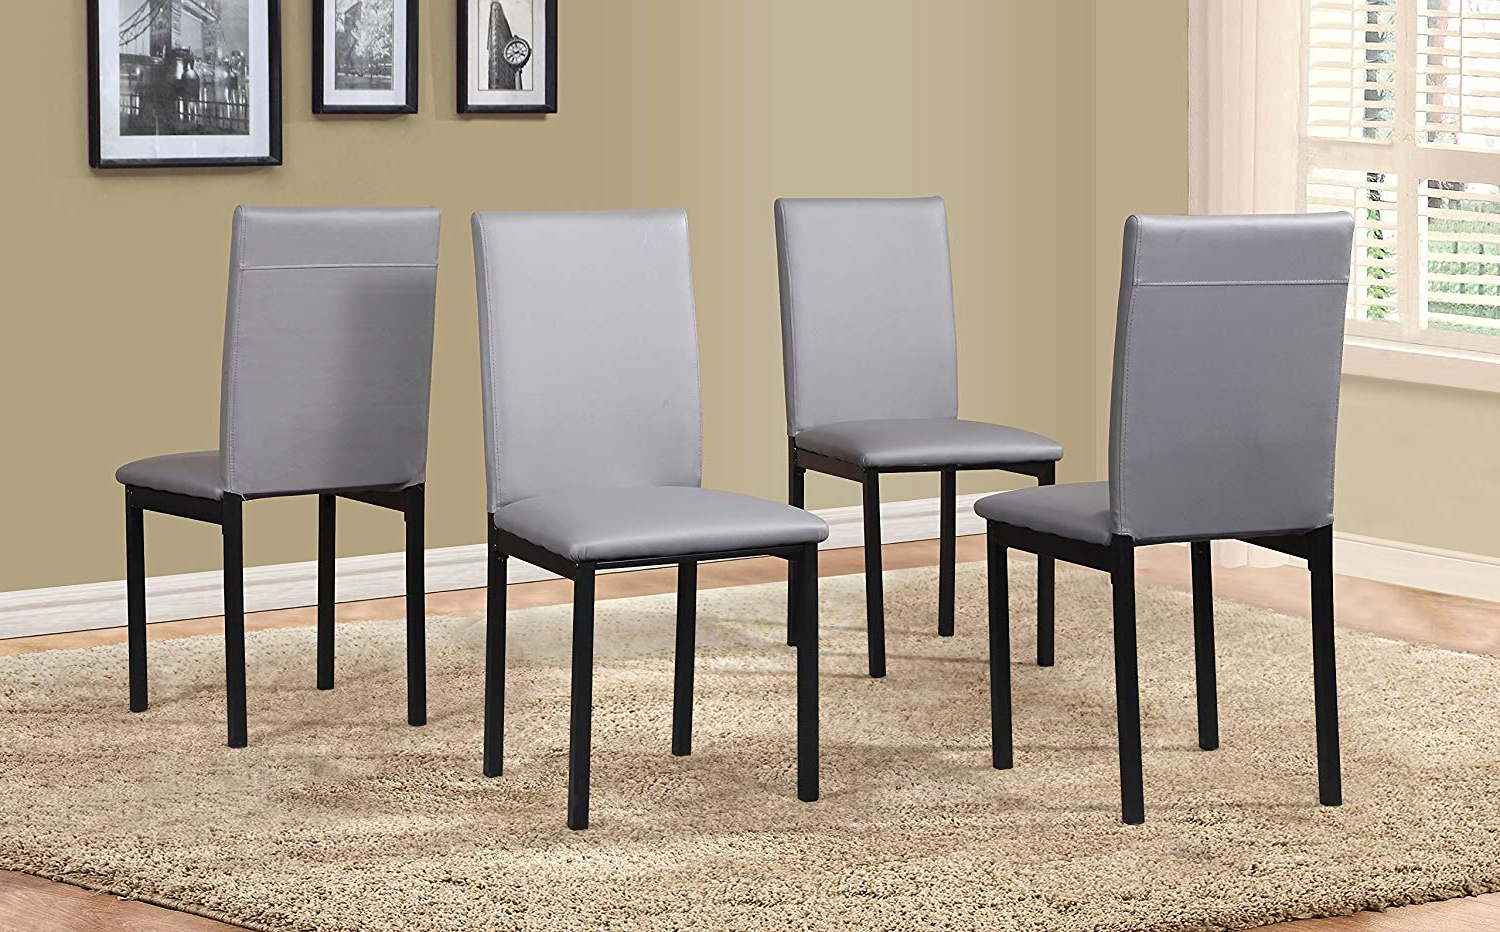 Fashionable Roundhill Furniture C007gy Noyes Faux Leather Metal Frame Dining Chair Gray For Noyes 5 Piece Dining Sets (Gallery 11 of 20)